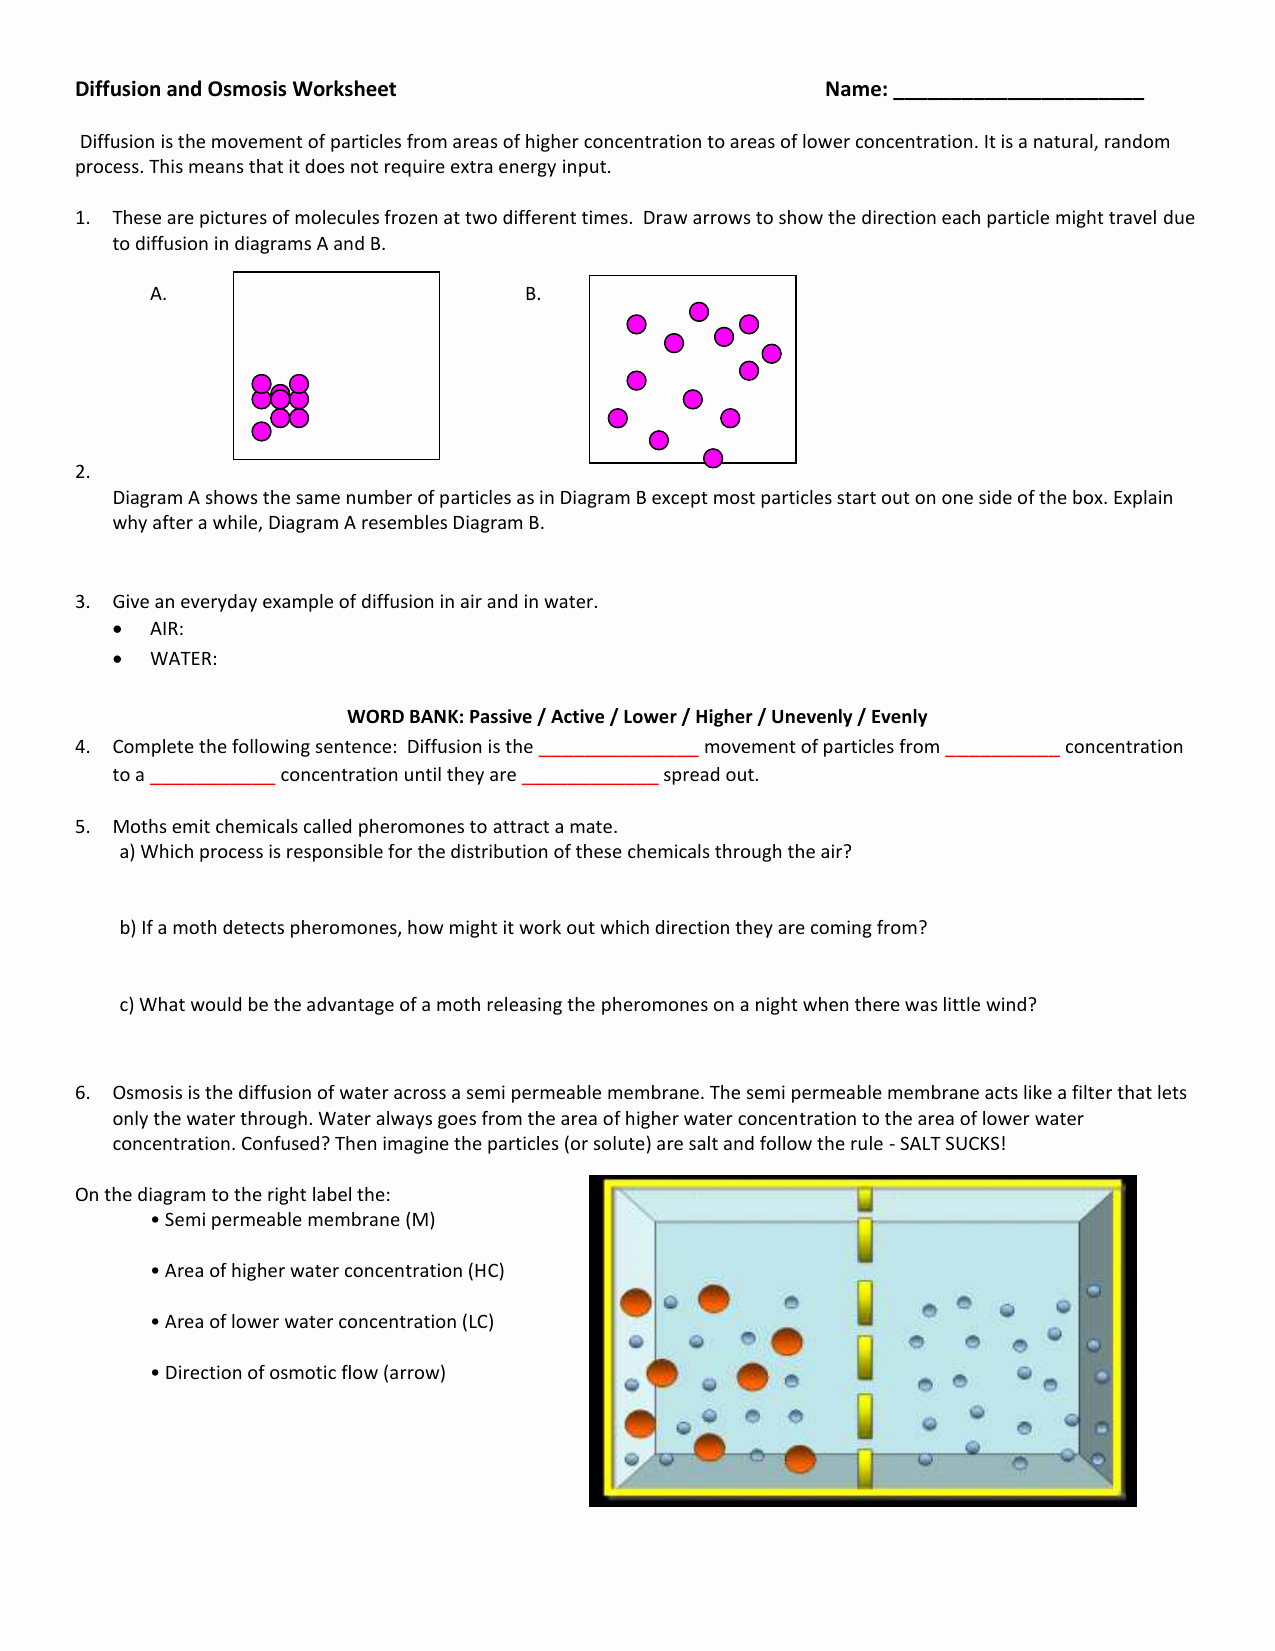 Diffusion and Osmosis Worksheet Elegant Diffusion and Osmosis Worksheet